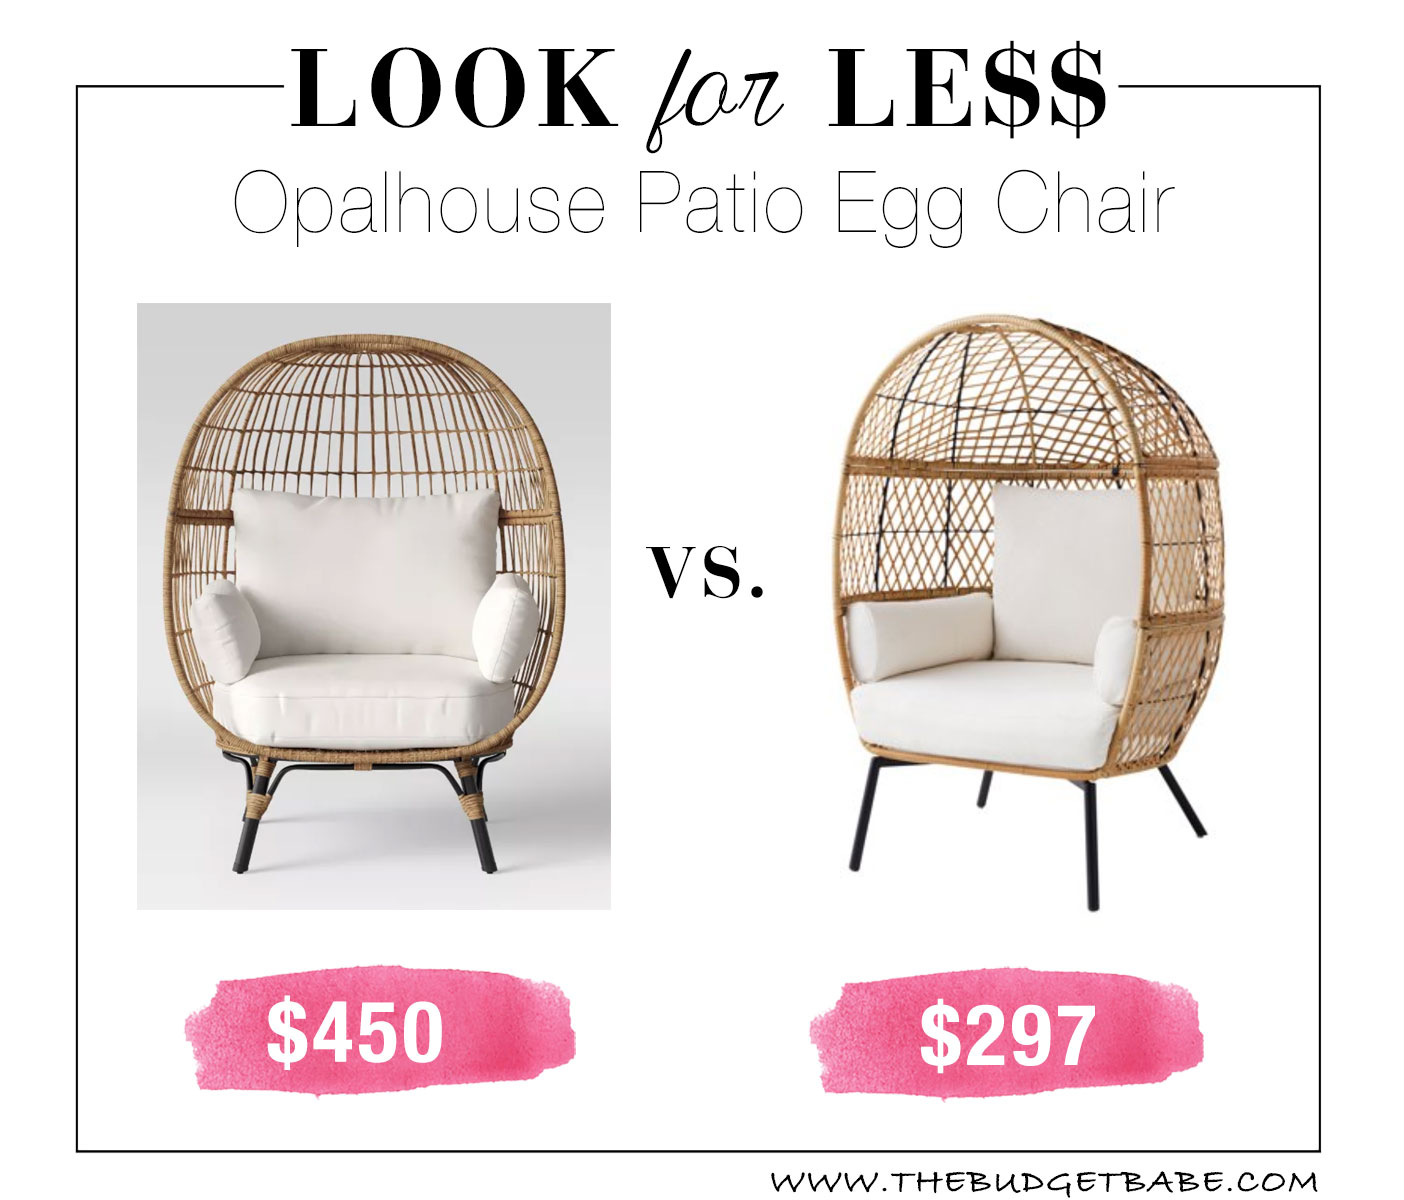 Patio Egg Chair Look for Less